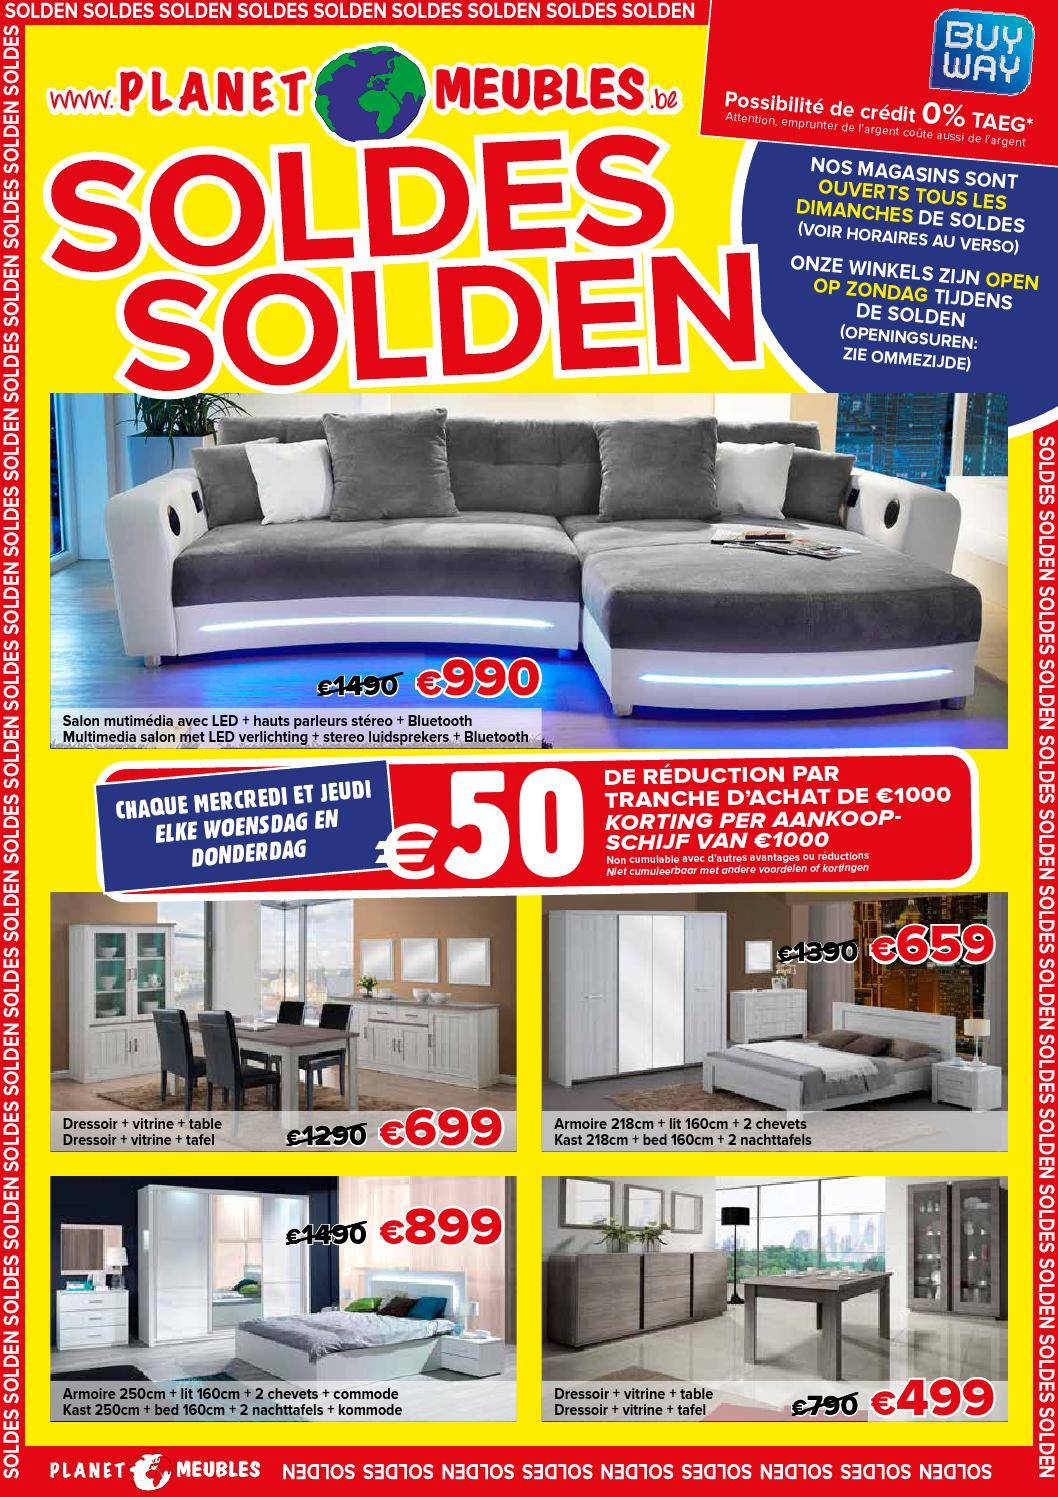 Soldes Meubles 2016 Planet Meubles Soldes 2016 By Vasco Interieur Issuu